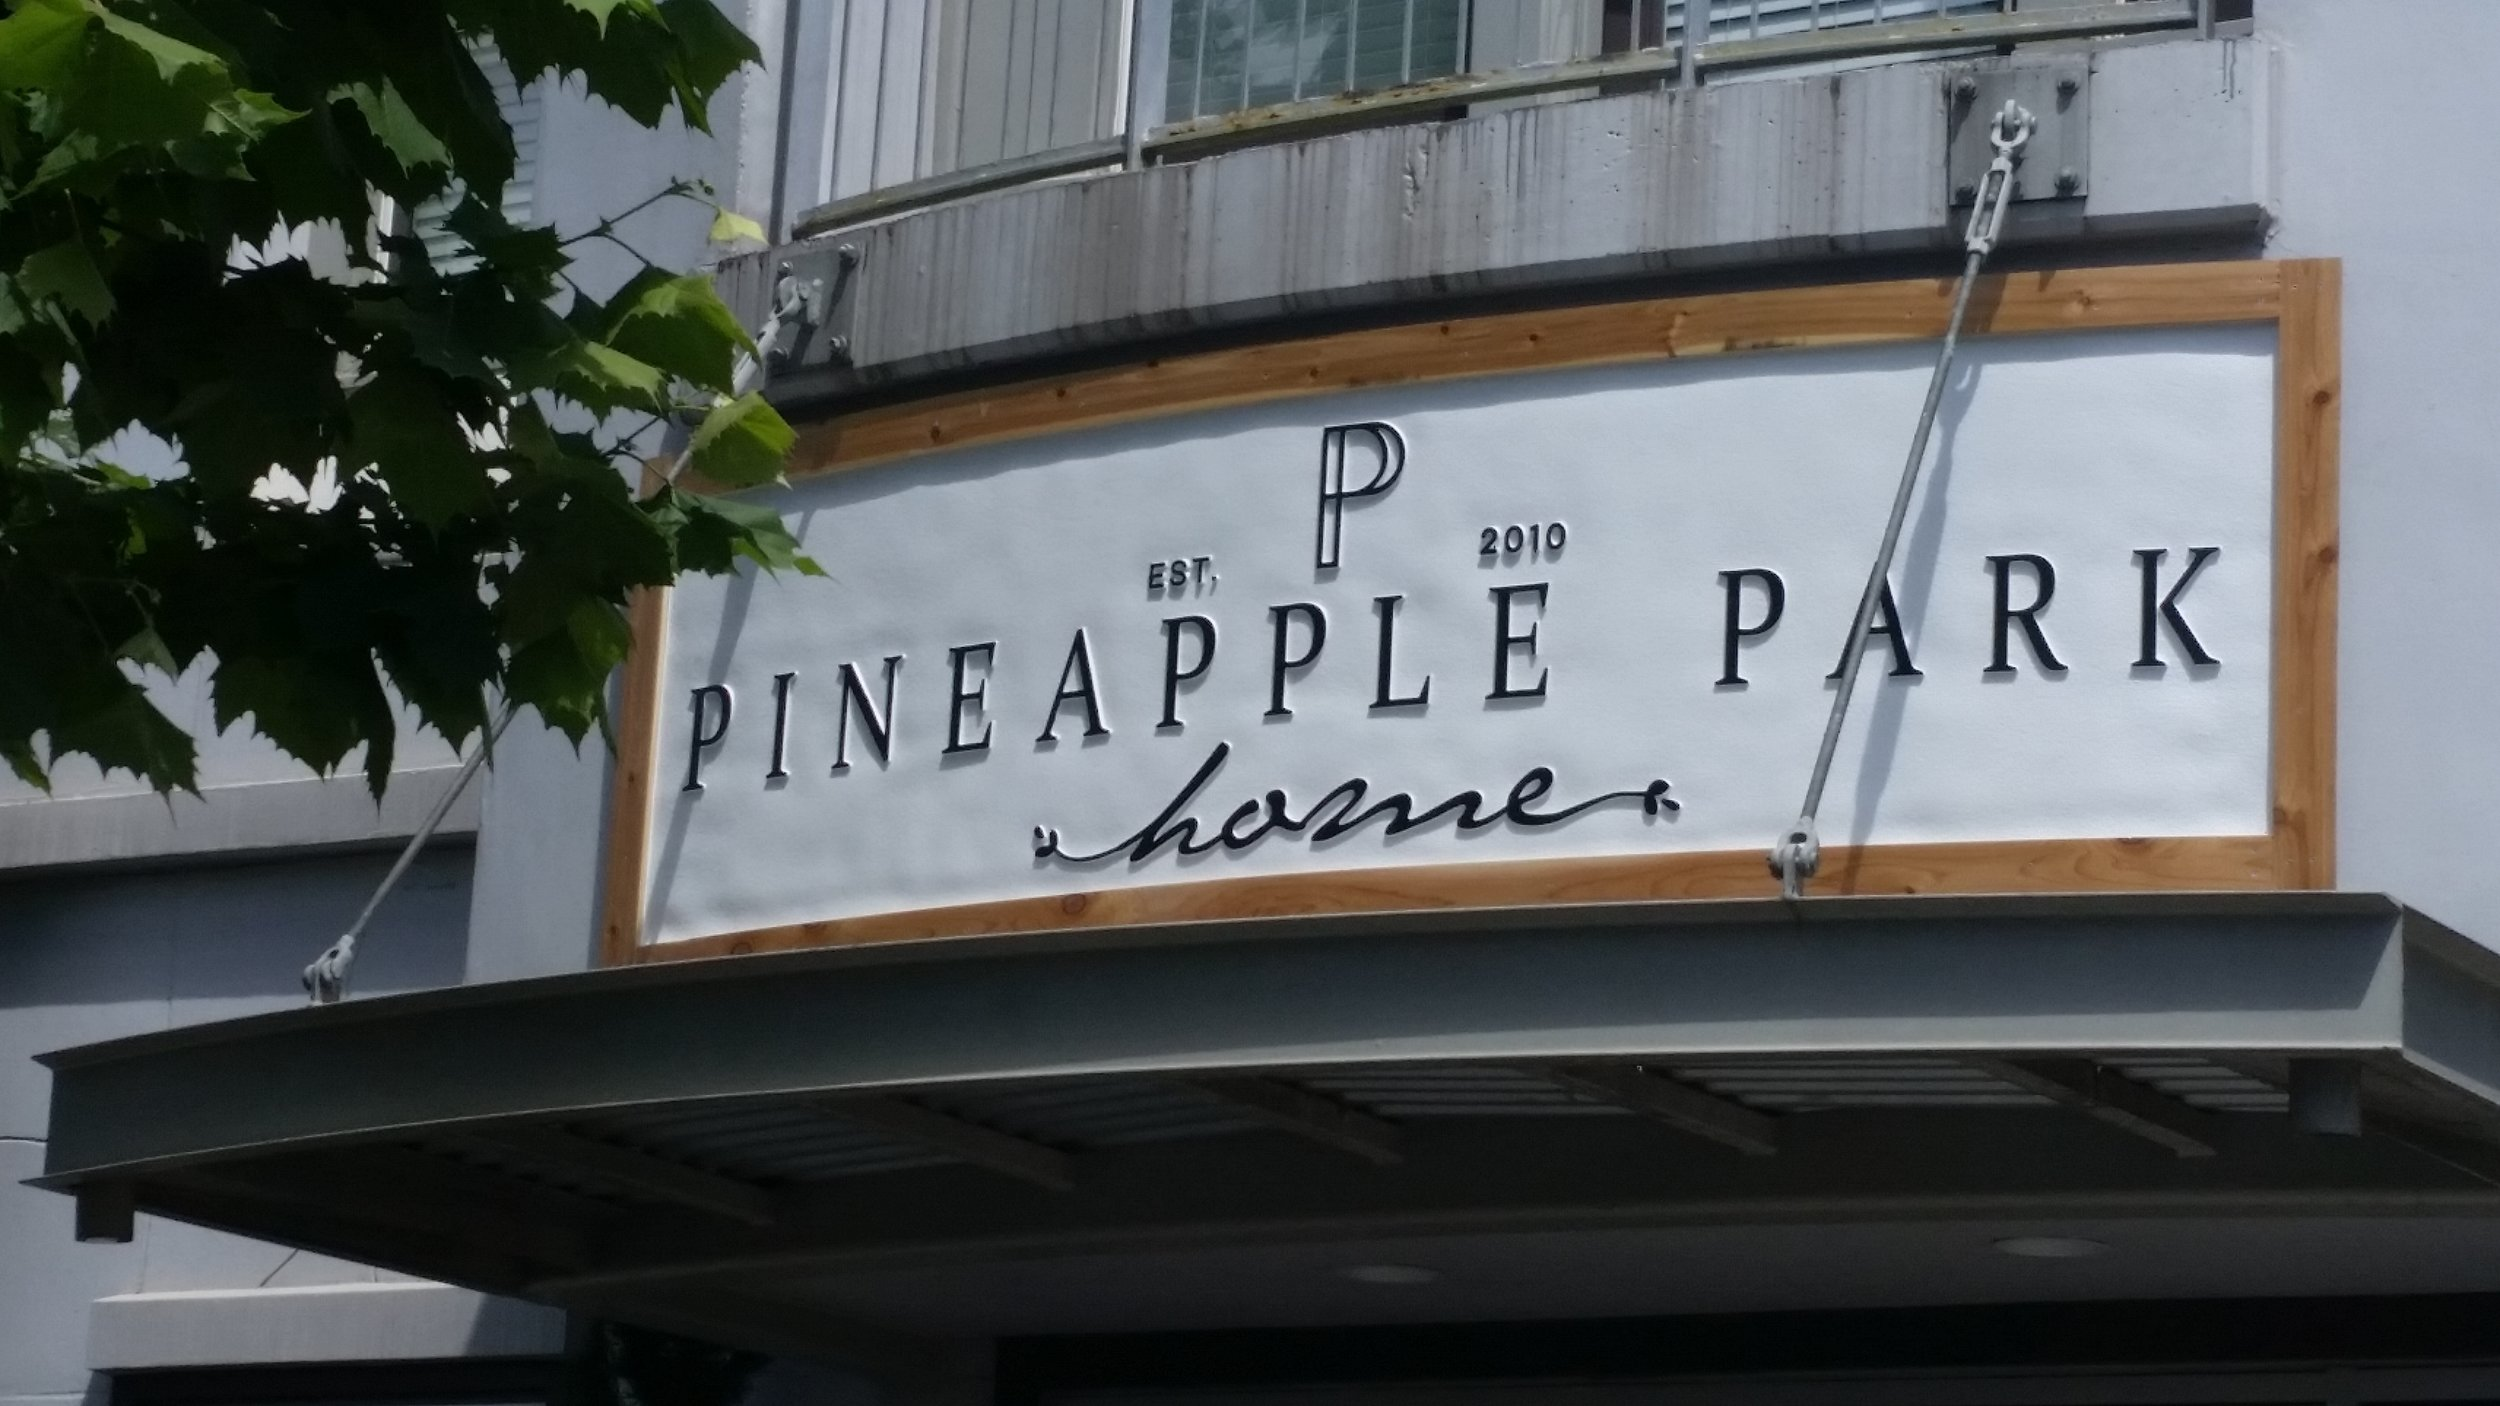 pineapple park home.jpg